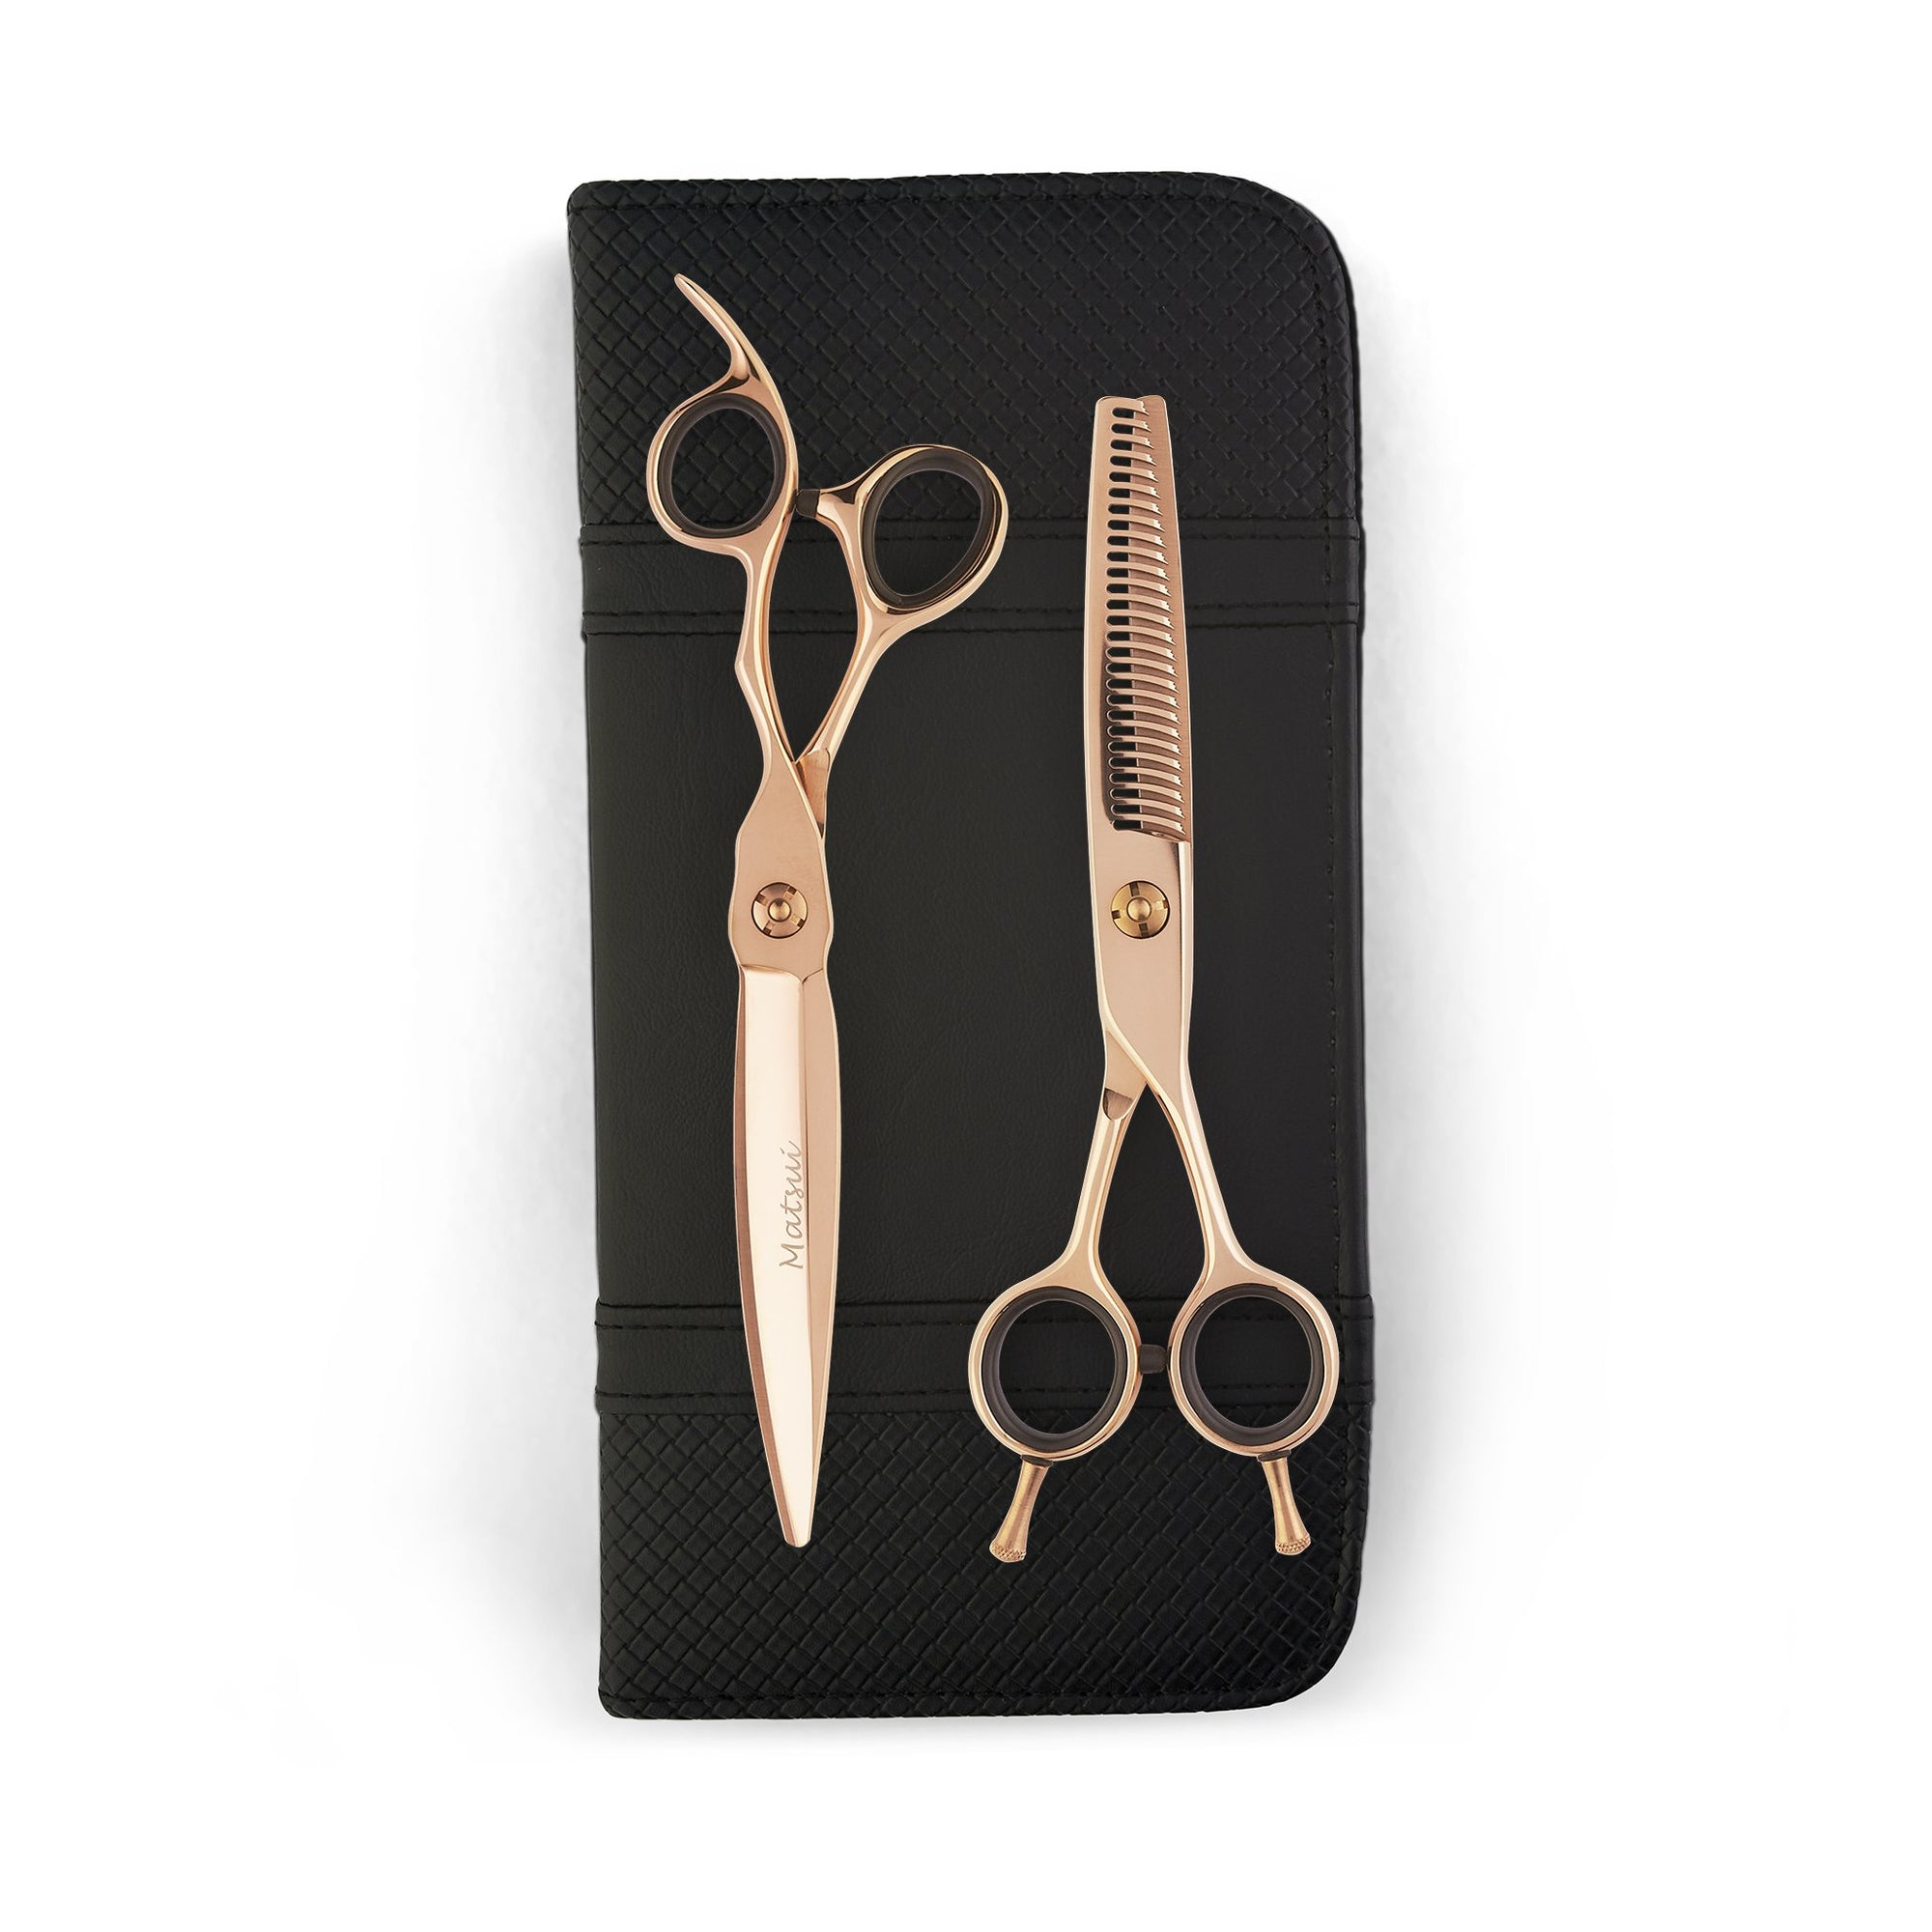 Matsui VG10 Sword Scissor Thinner Combo - Rose Gold